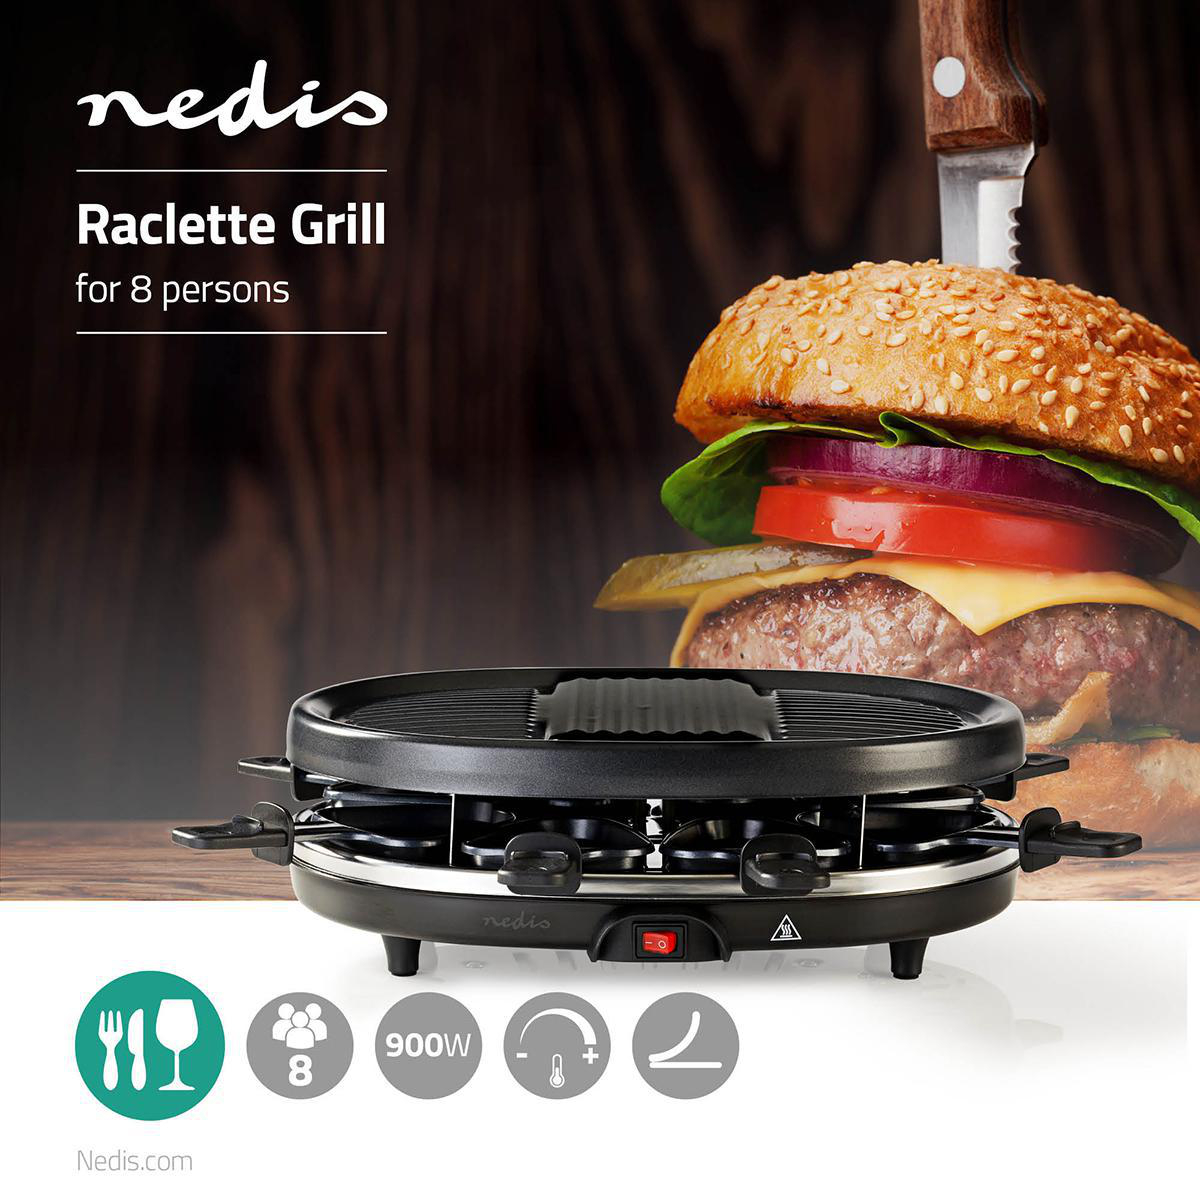 Raclette Grill for 8 people, 900W | eStore